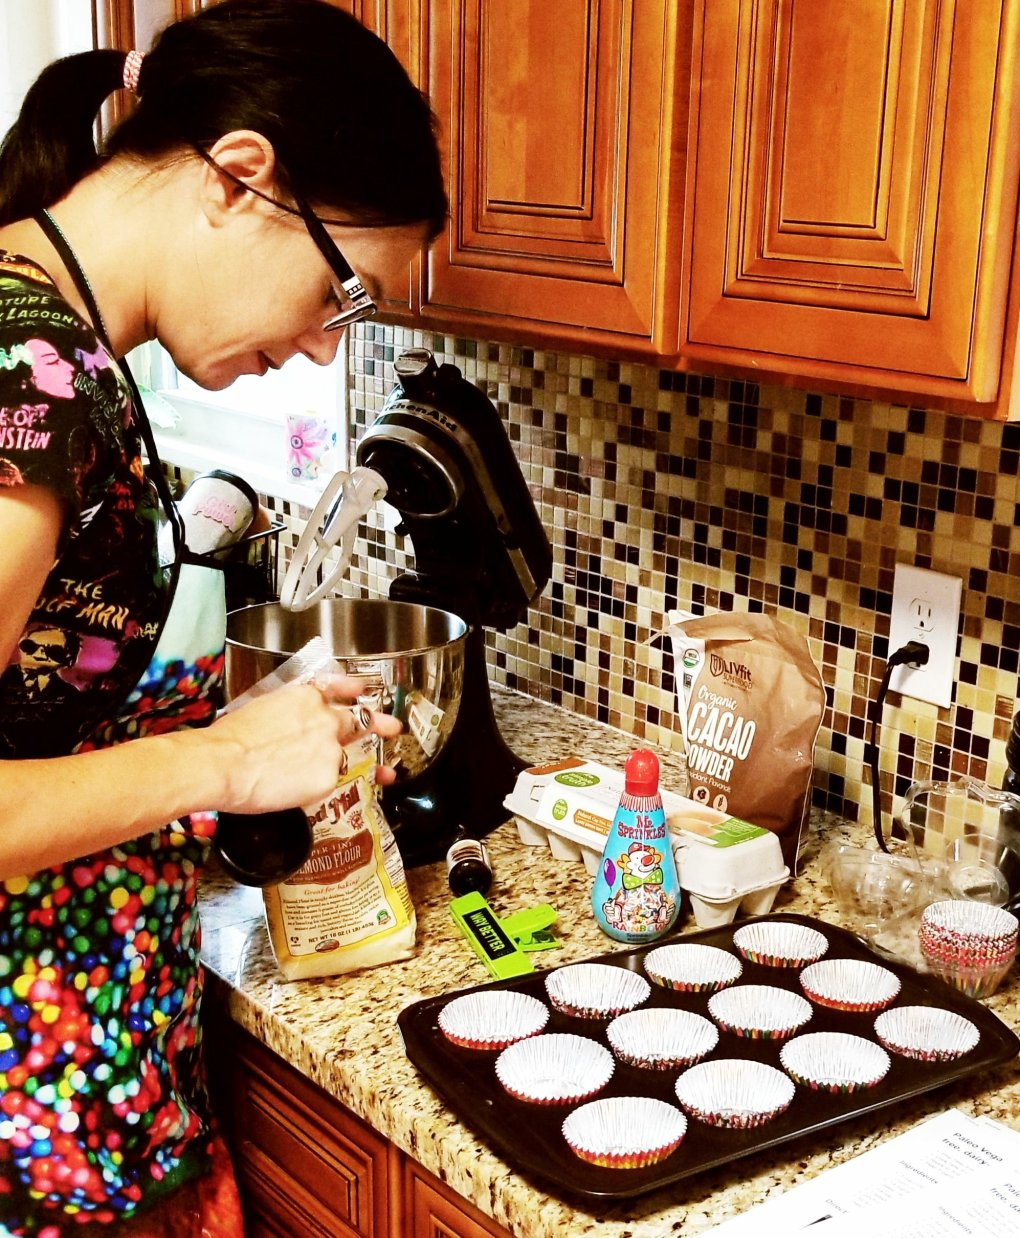 Give It A Whirl Girl making paleo dark chocolate fudge cupcakes